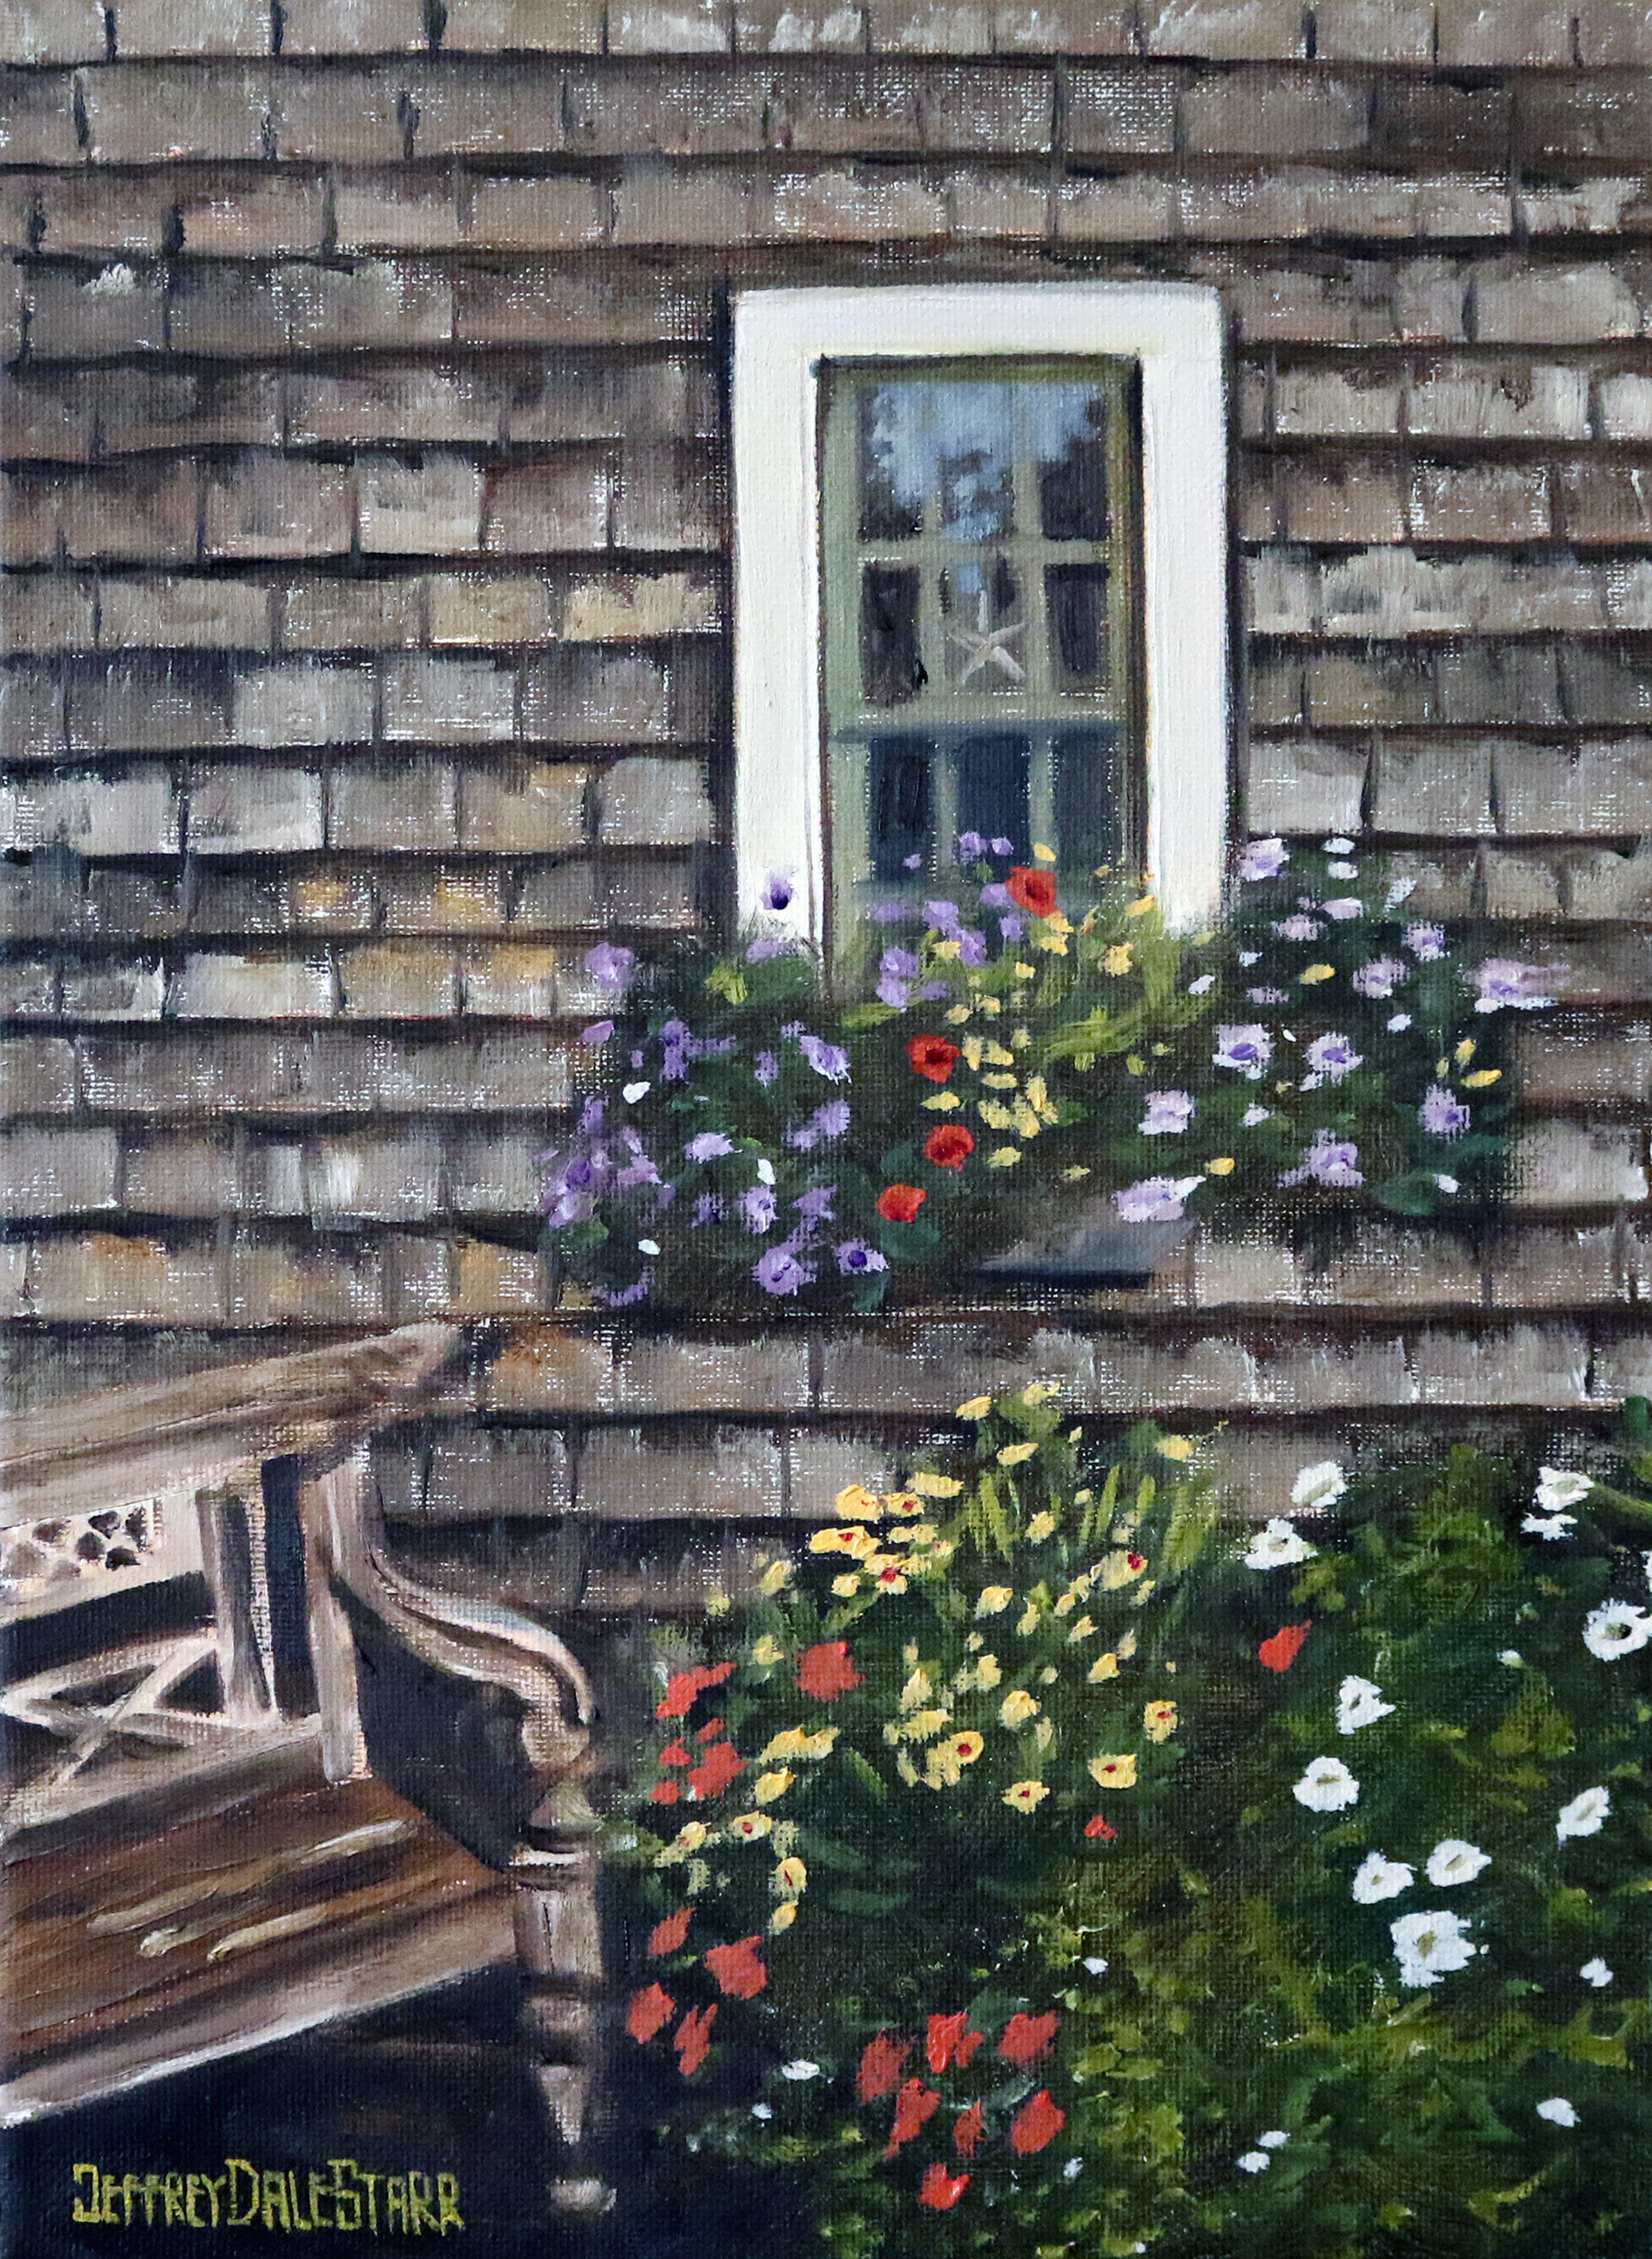 Patio of Flowers on Cape Cod by Jeffrey Dale Starr